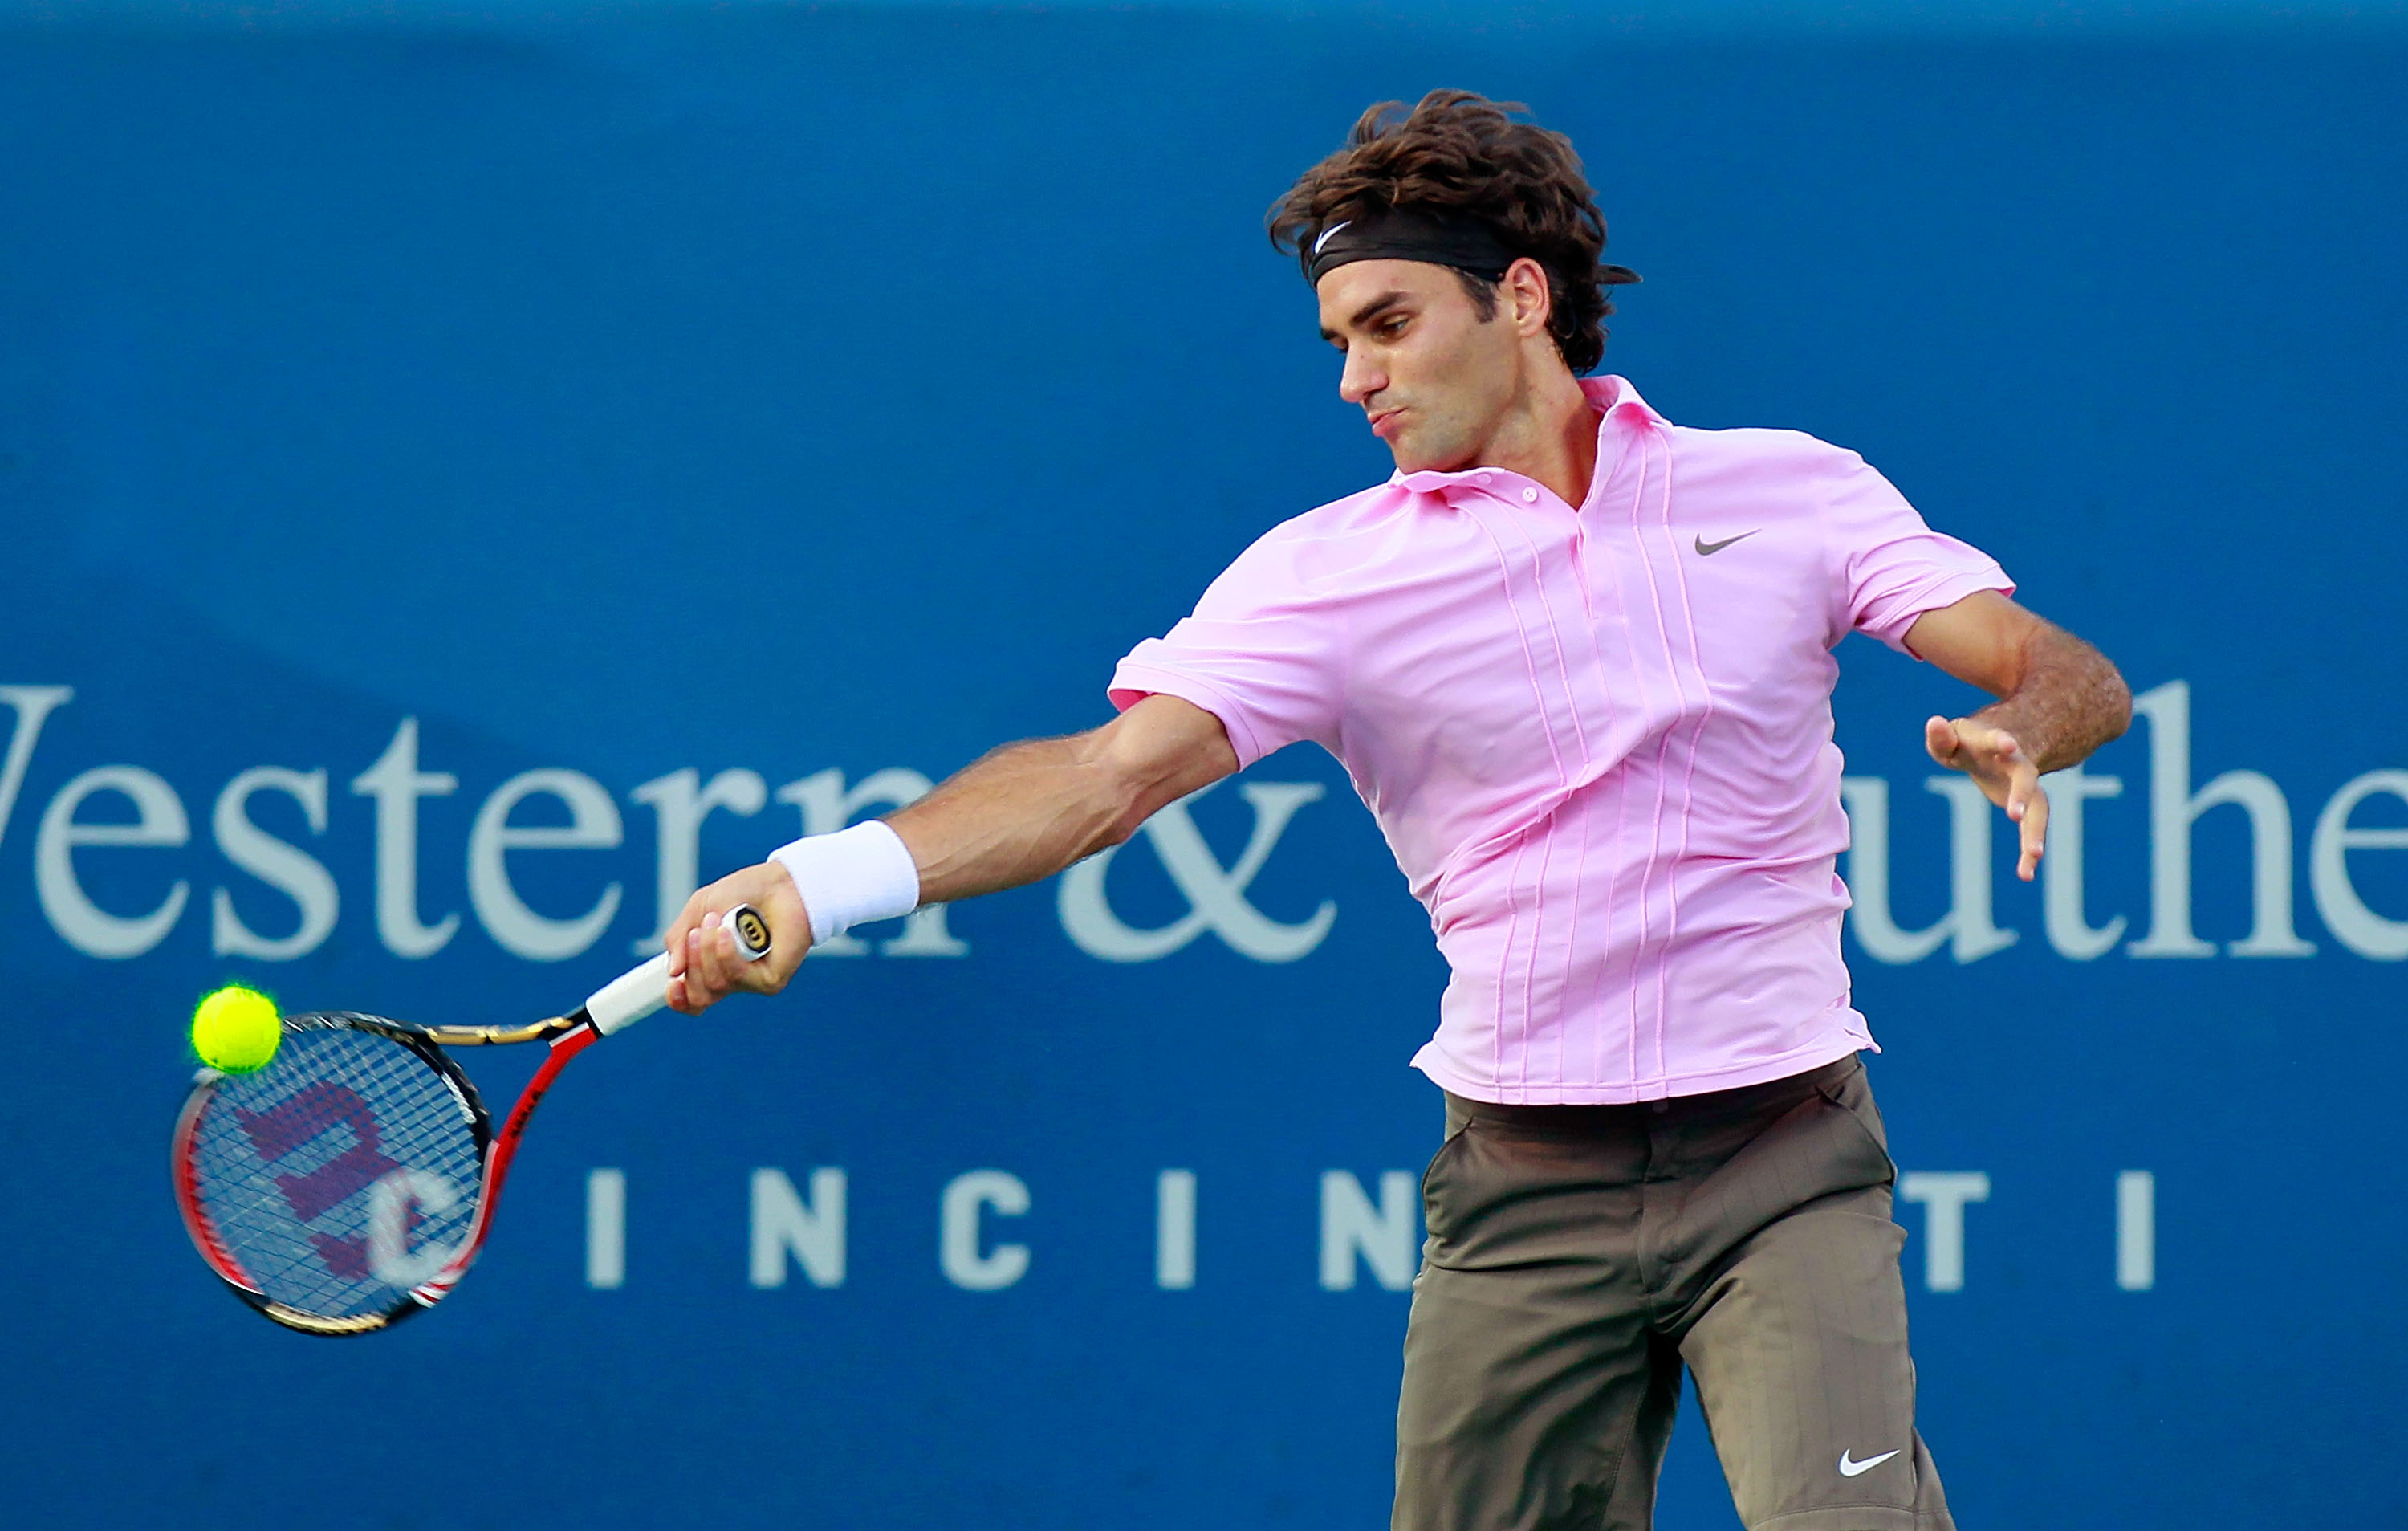 CINCINNATI - AUGUST 20:  Roger Federer of Switzerland returns a forehand to Nikolay Davydenko of Russia during Day 5 of the Western & Southern Financial Group Masters at the Lindner Family Tennis Center on August 20, 2010 in Cincinnati, Ohio.  (Photo by K